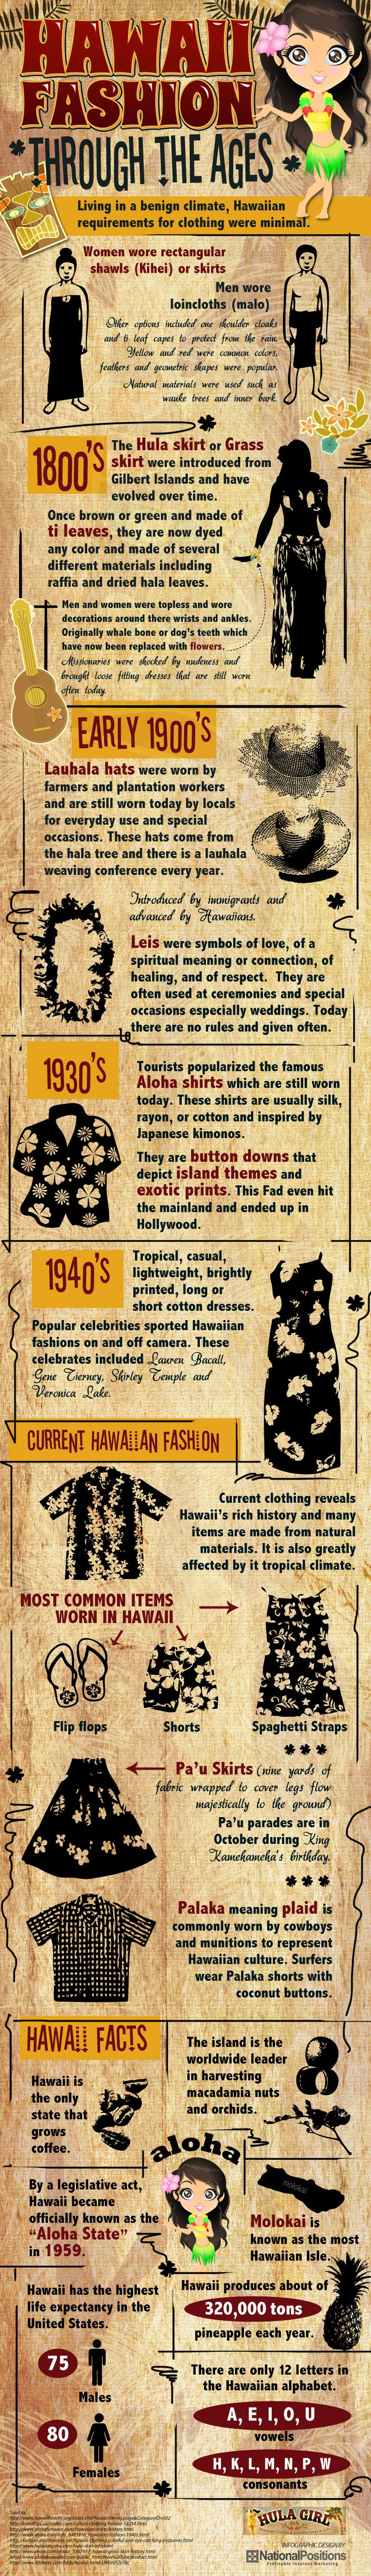 The clothing that is native to Hawaii has changed a lot over the years.